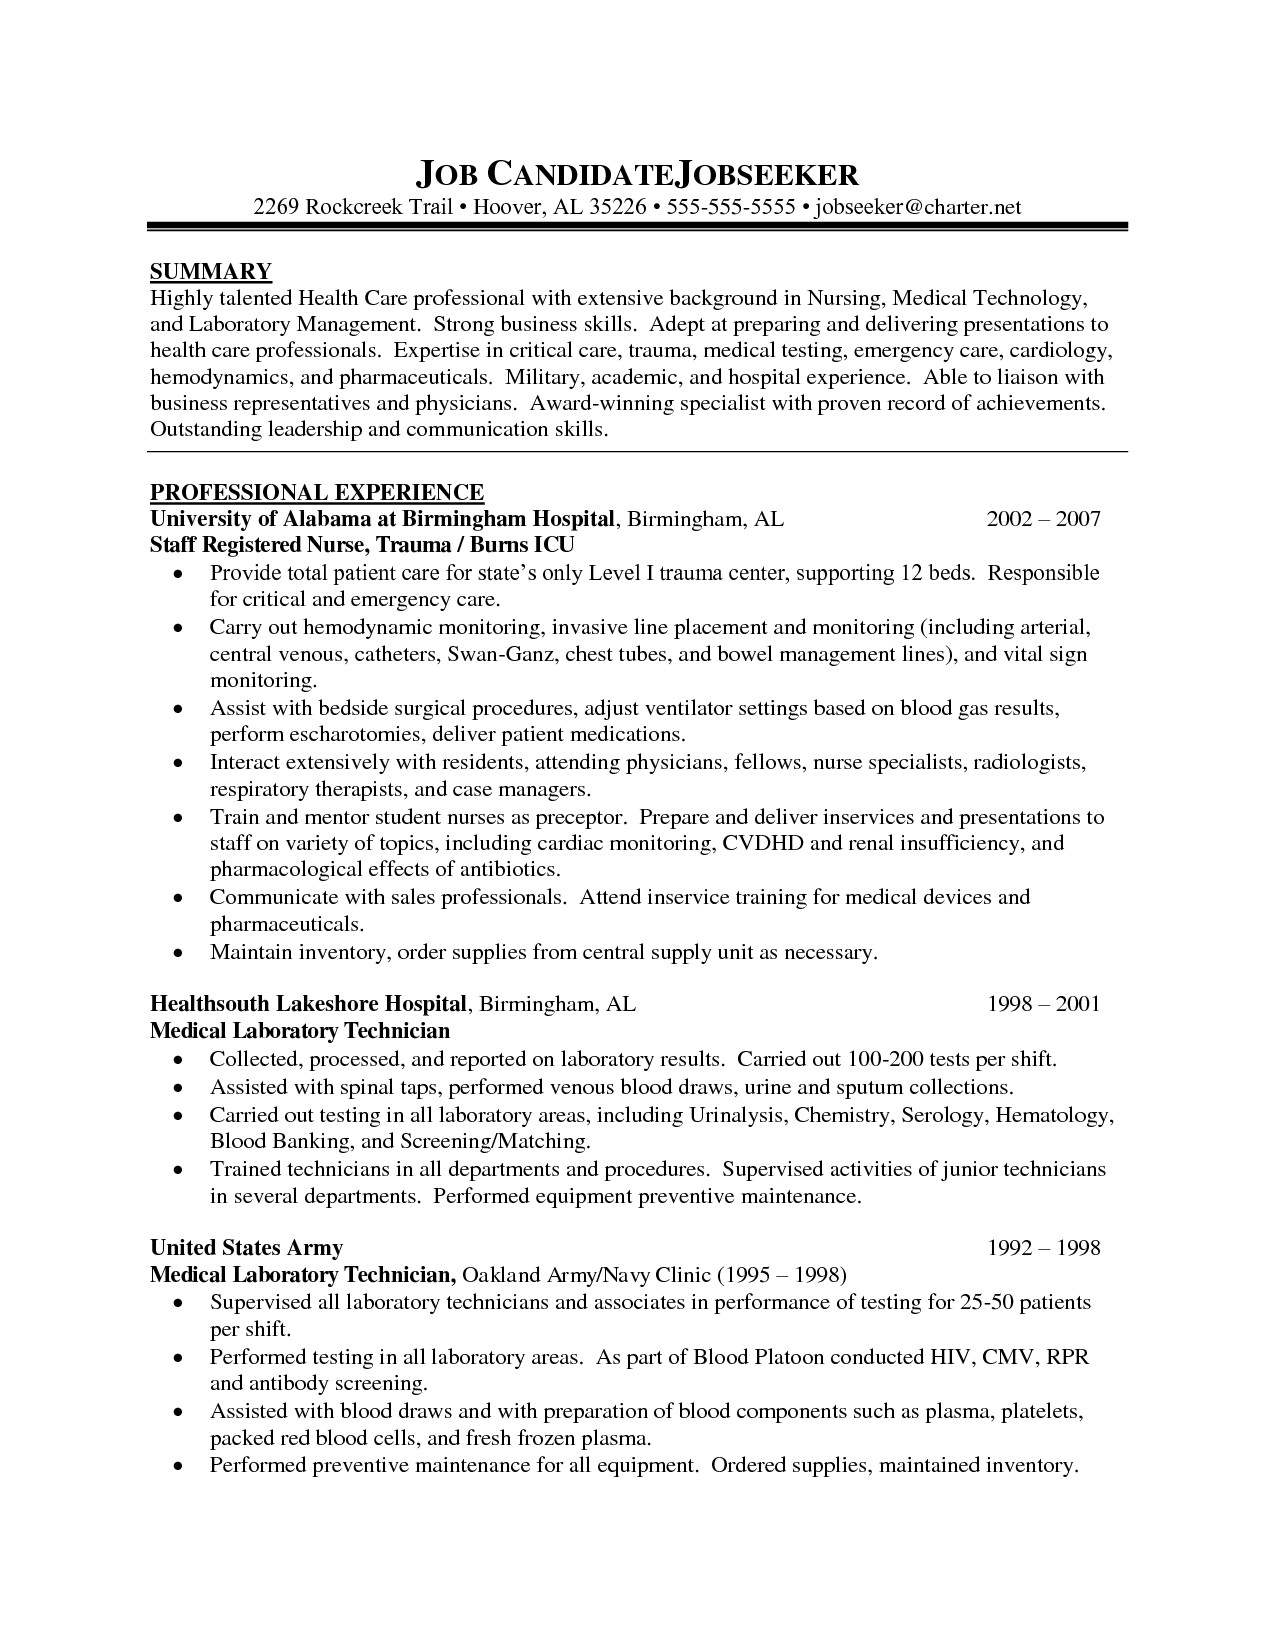 Nursing Student Resume Template Nursing Student Resume Template